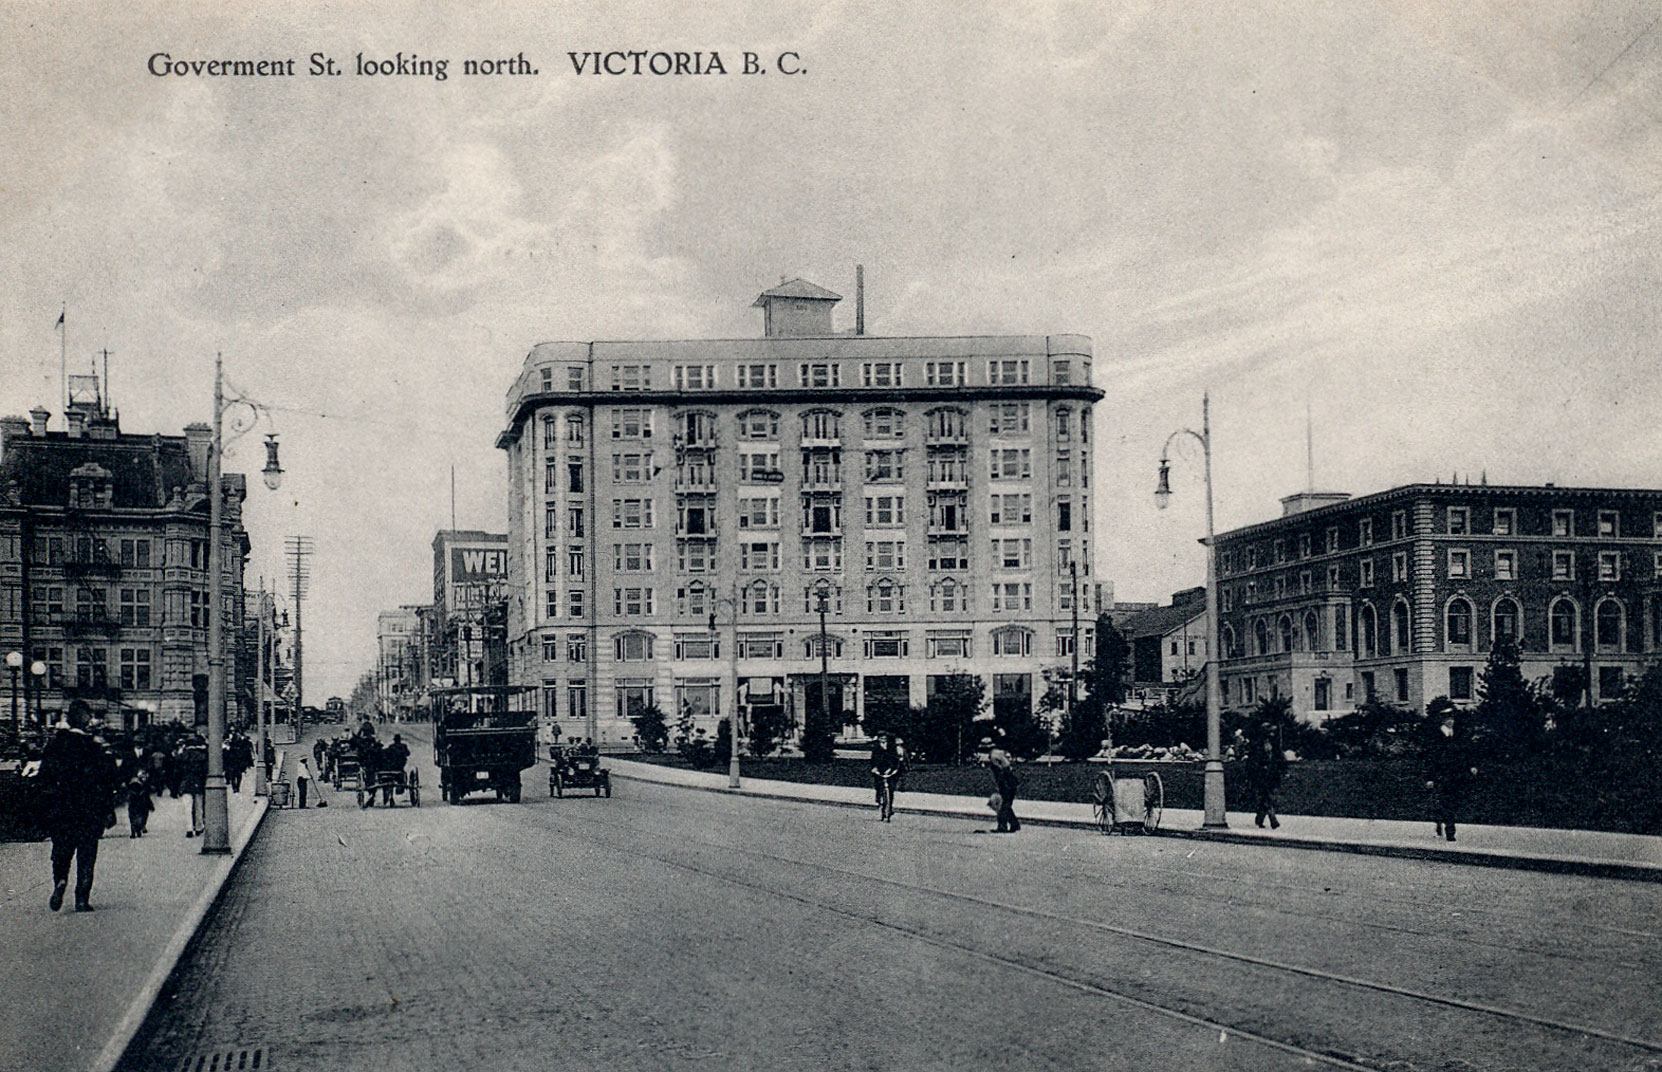 The Belmont Building (center) and the Union Club (right), circa 1920. Robert Butchart's office was on the third floor of the Belmont Building and he was a member of the Union Club. (Author's collection)